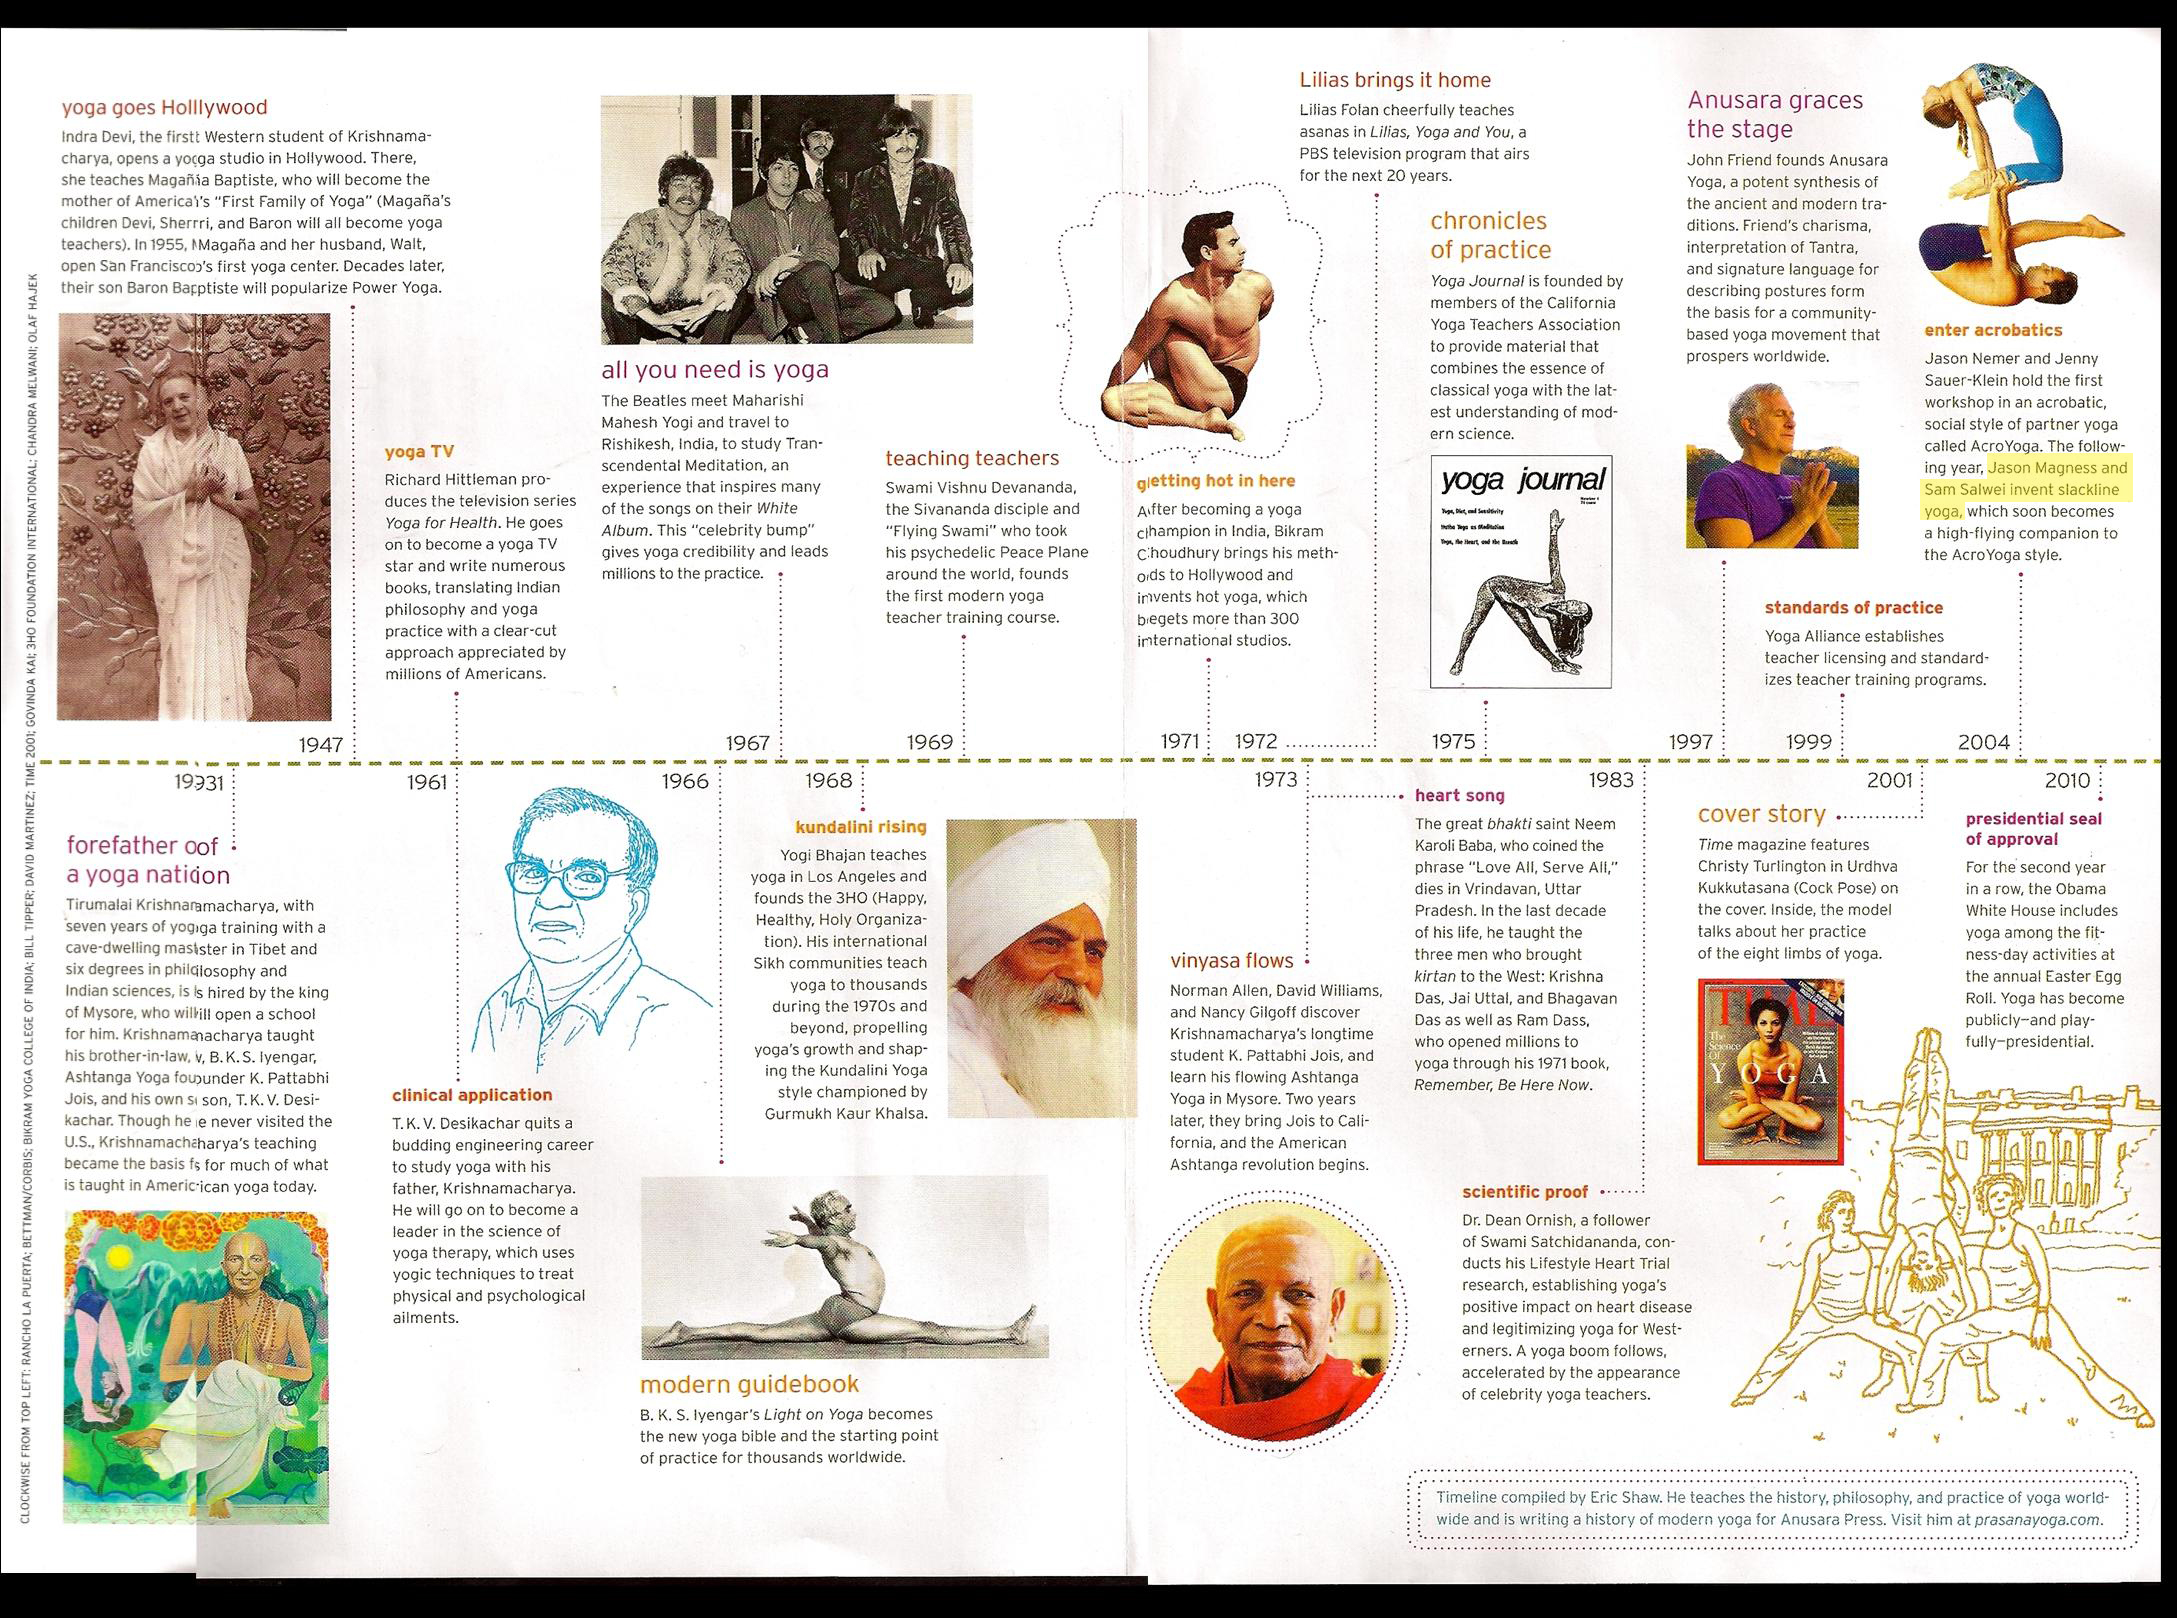 History of Yoga in Yoga Journal